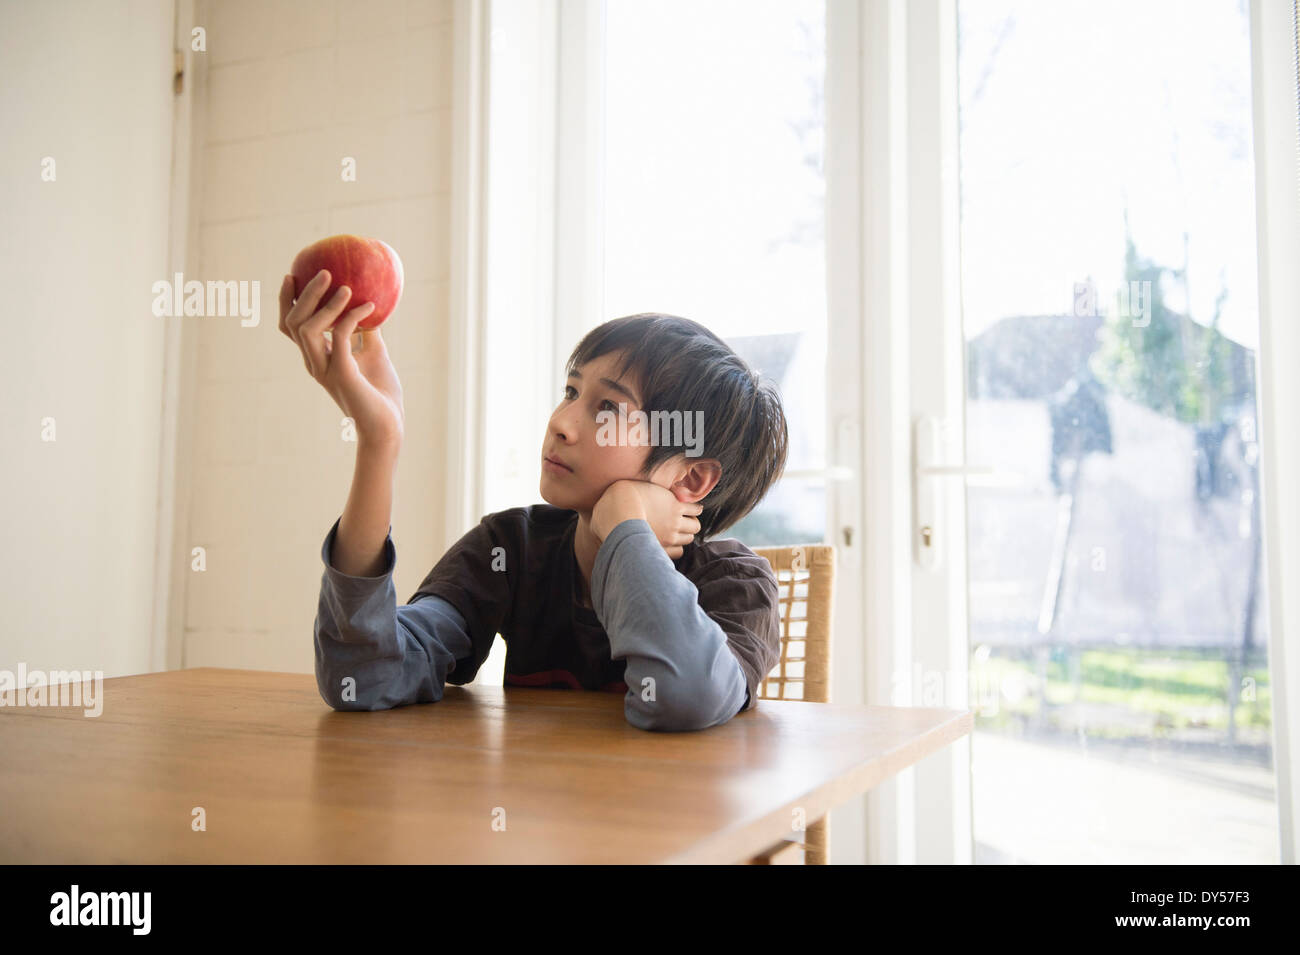 Boy sitting at table, holding an apple in front of him - Stock Image